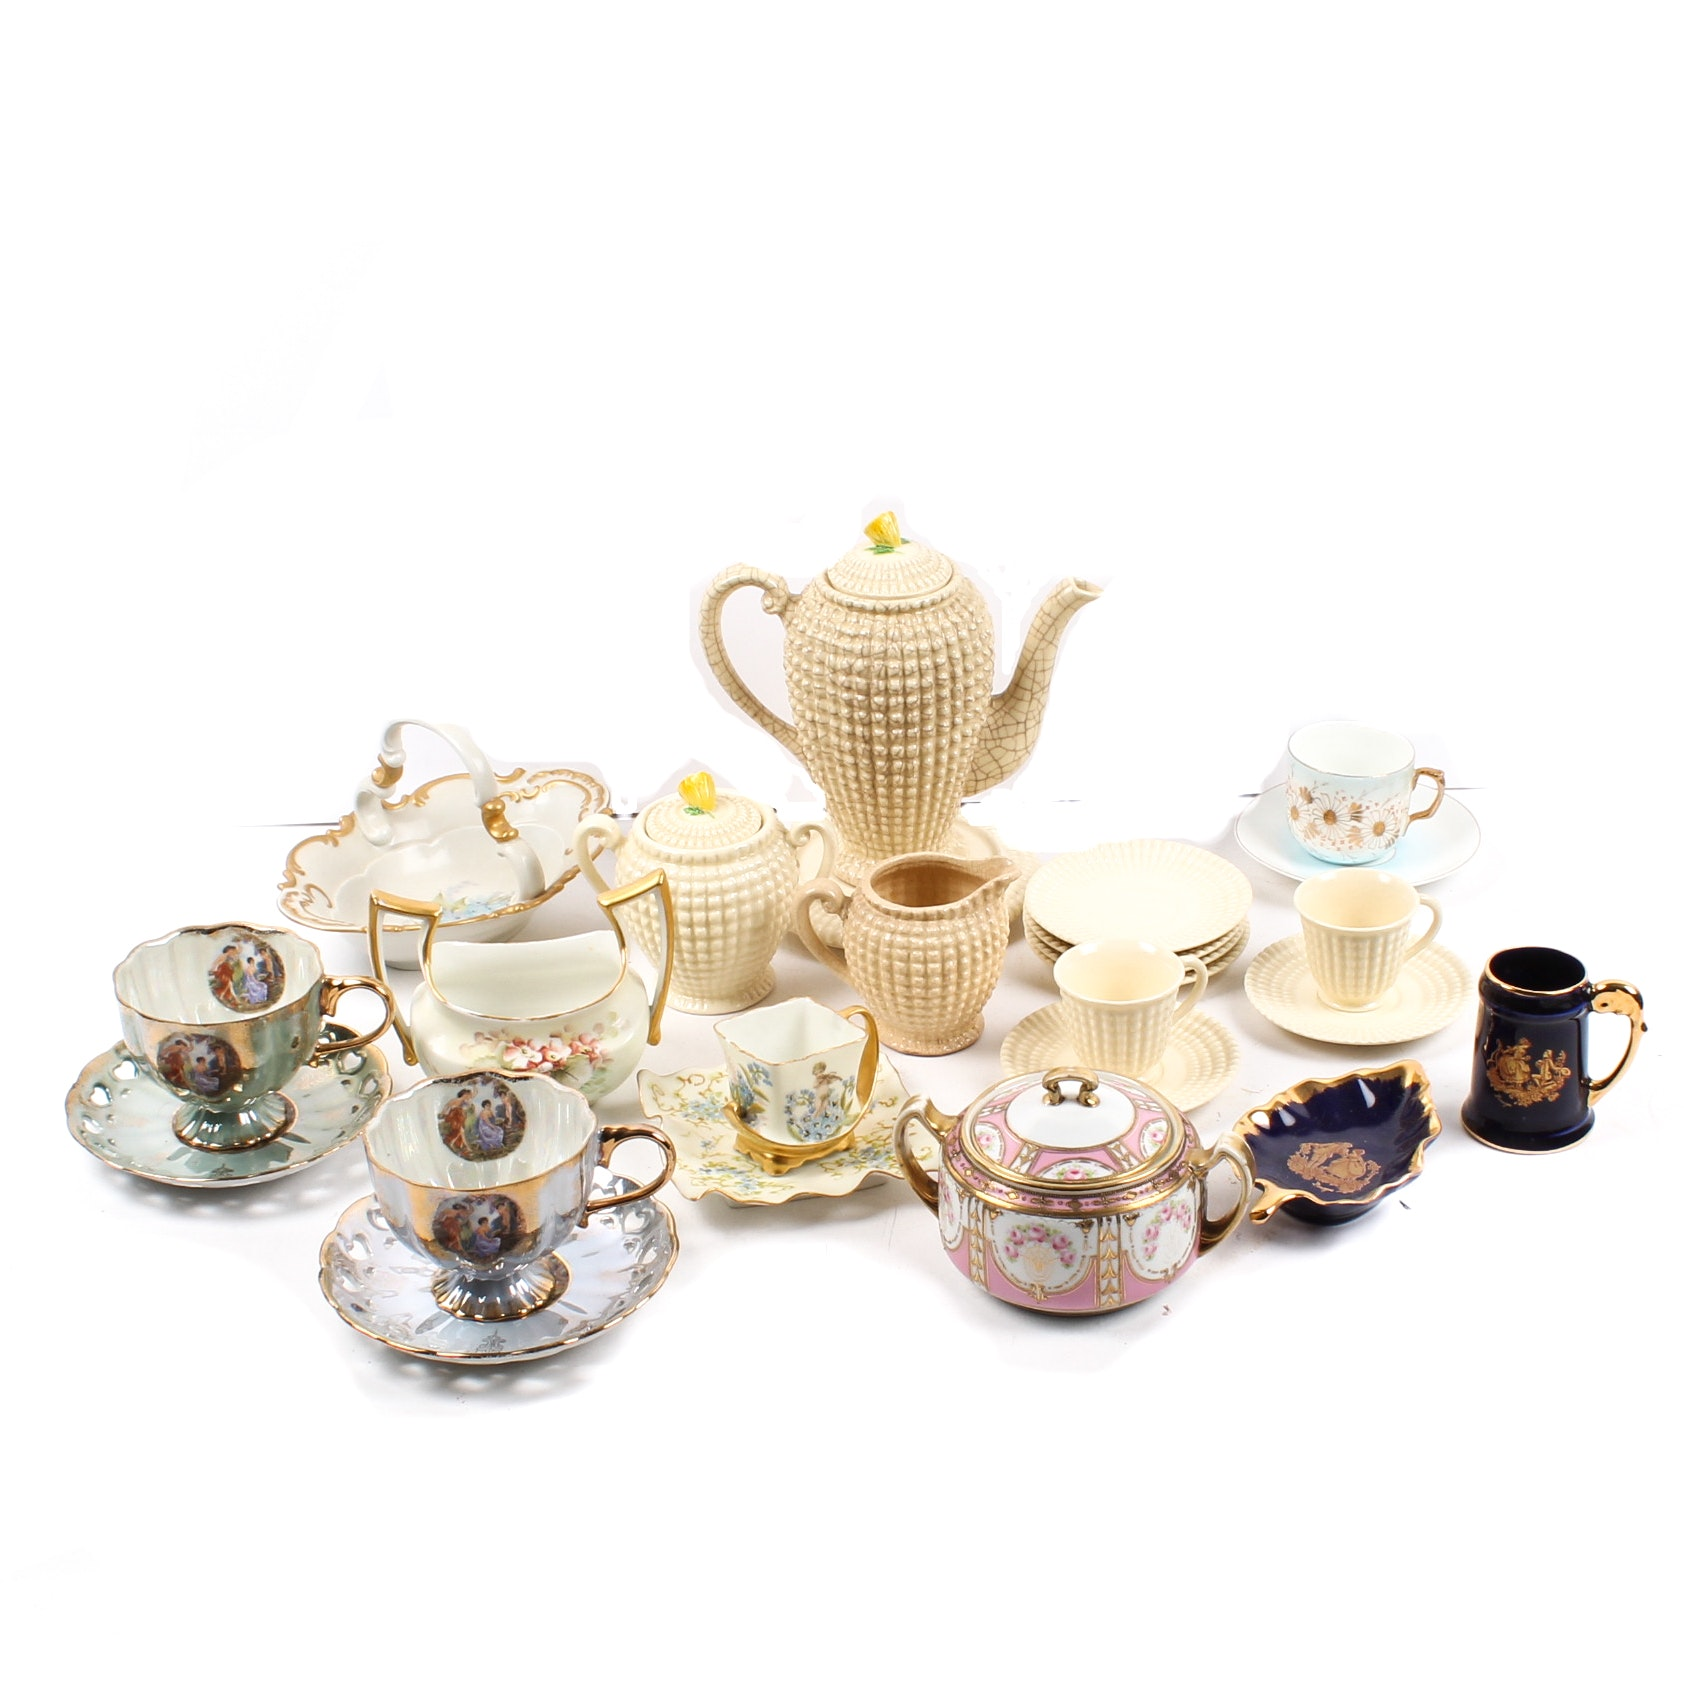 Tea Pots, Mugs, and Cups Assortment